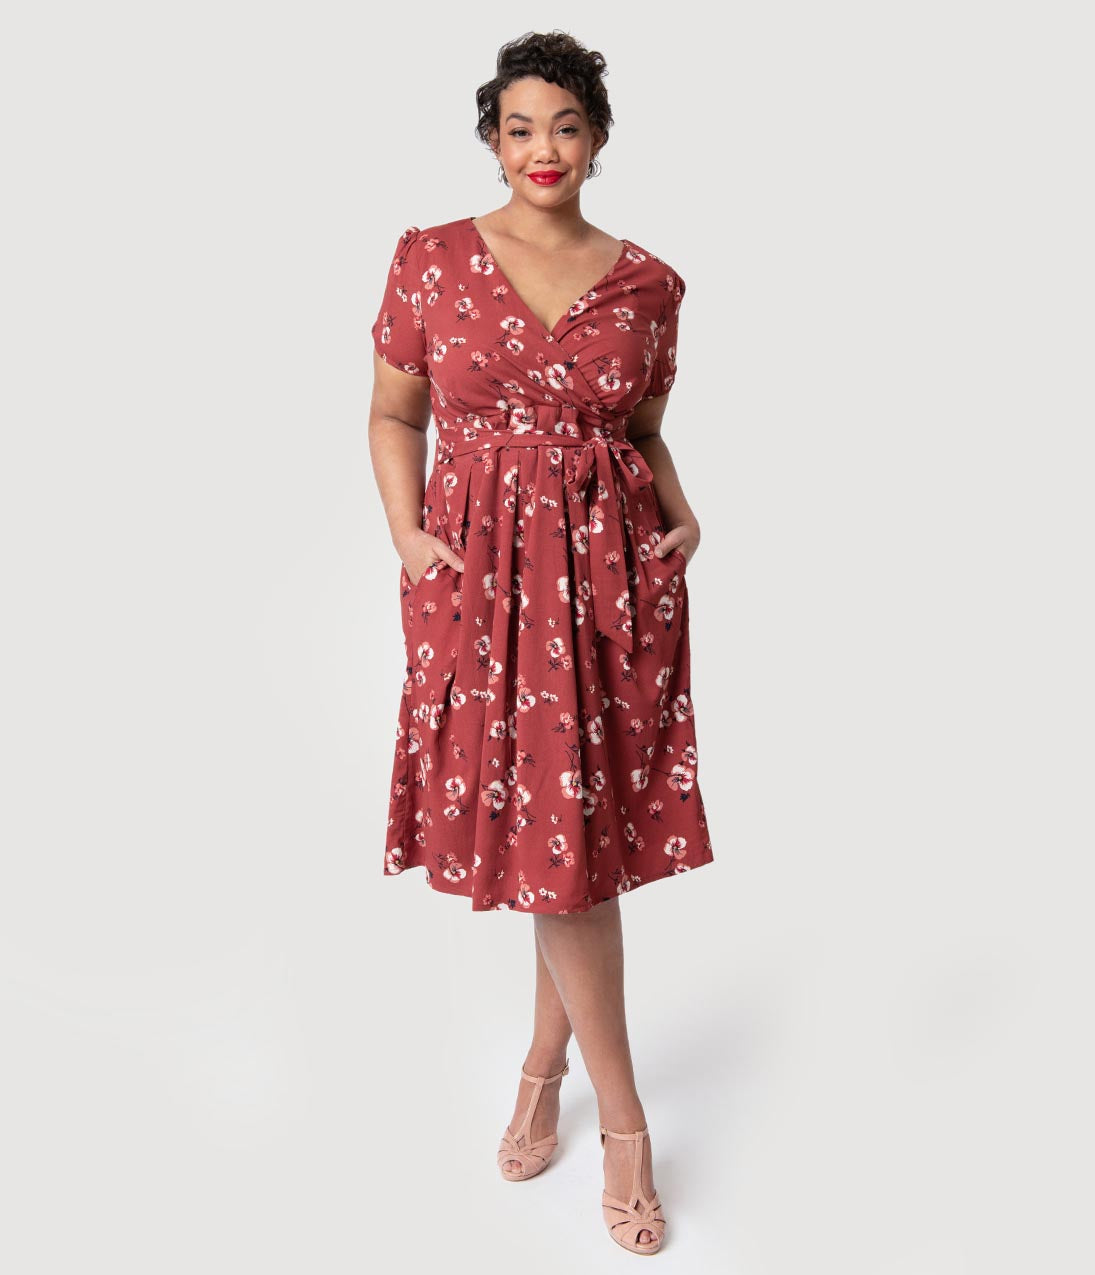 1940s Dresses | 40s Dress, Swing Dress Plus Size 1940S Style Dark Pink Floral Short Sleeve Katelyn Midi Dress $68.00 AT vintagedancer.com